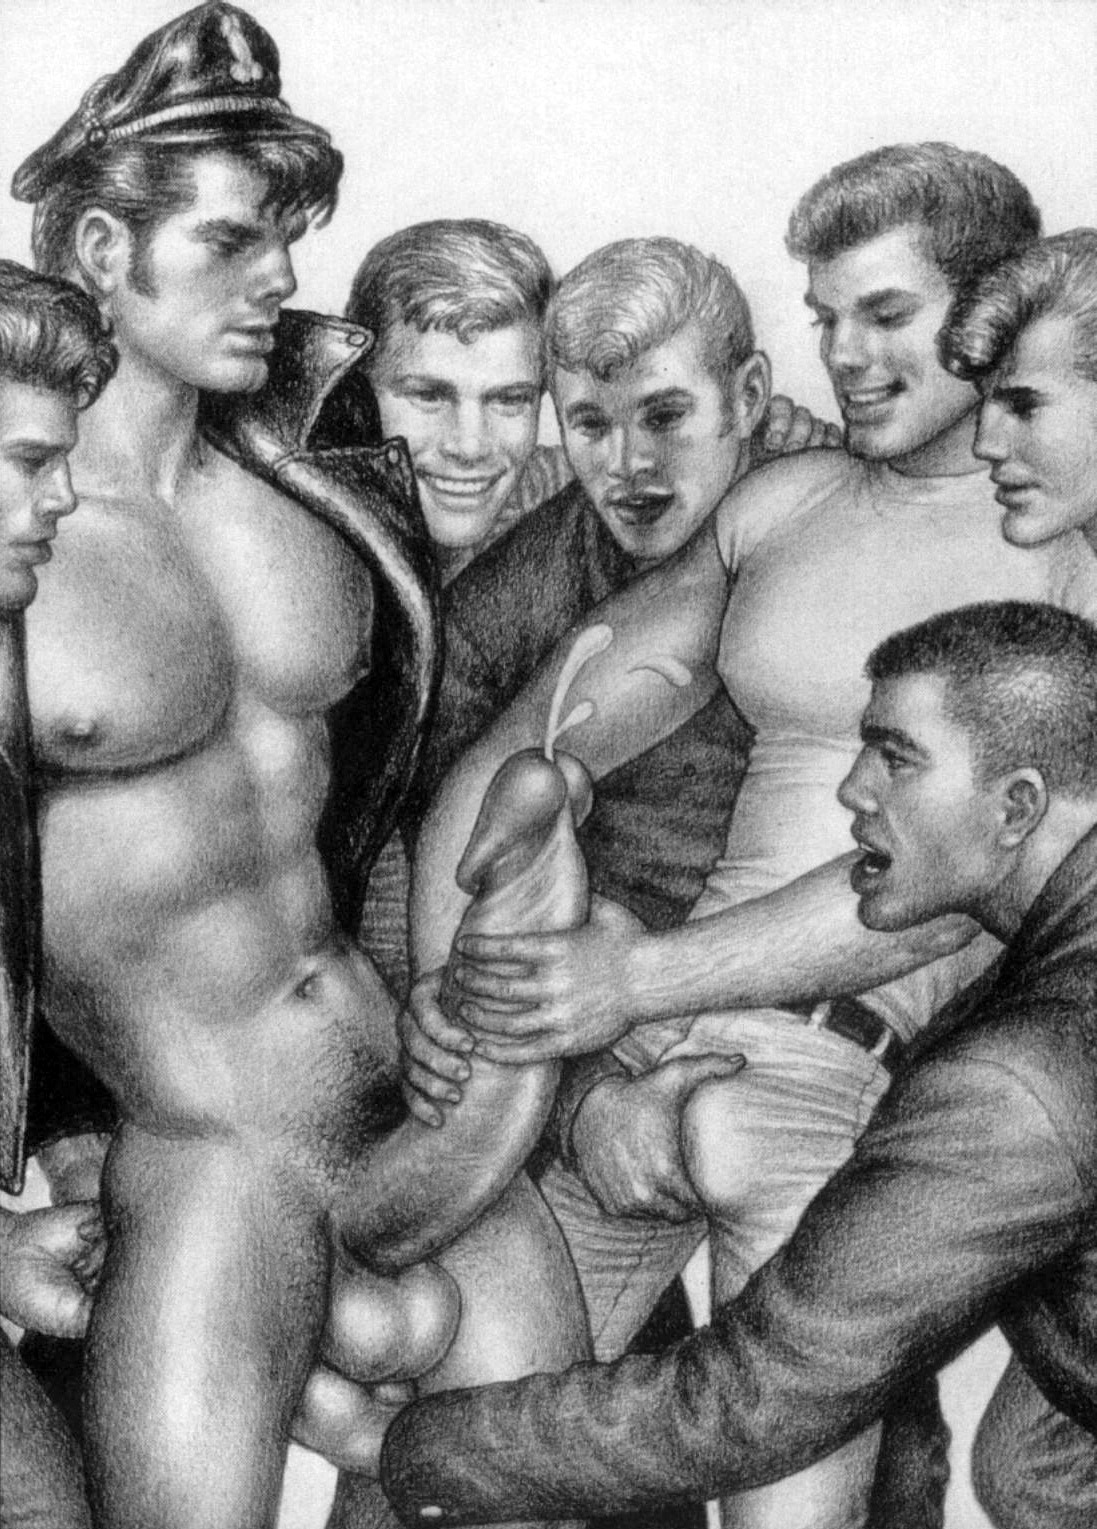 Dome Karukoski: Tom Of Finland Movie